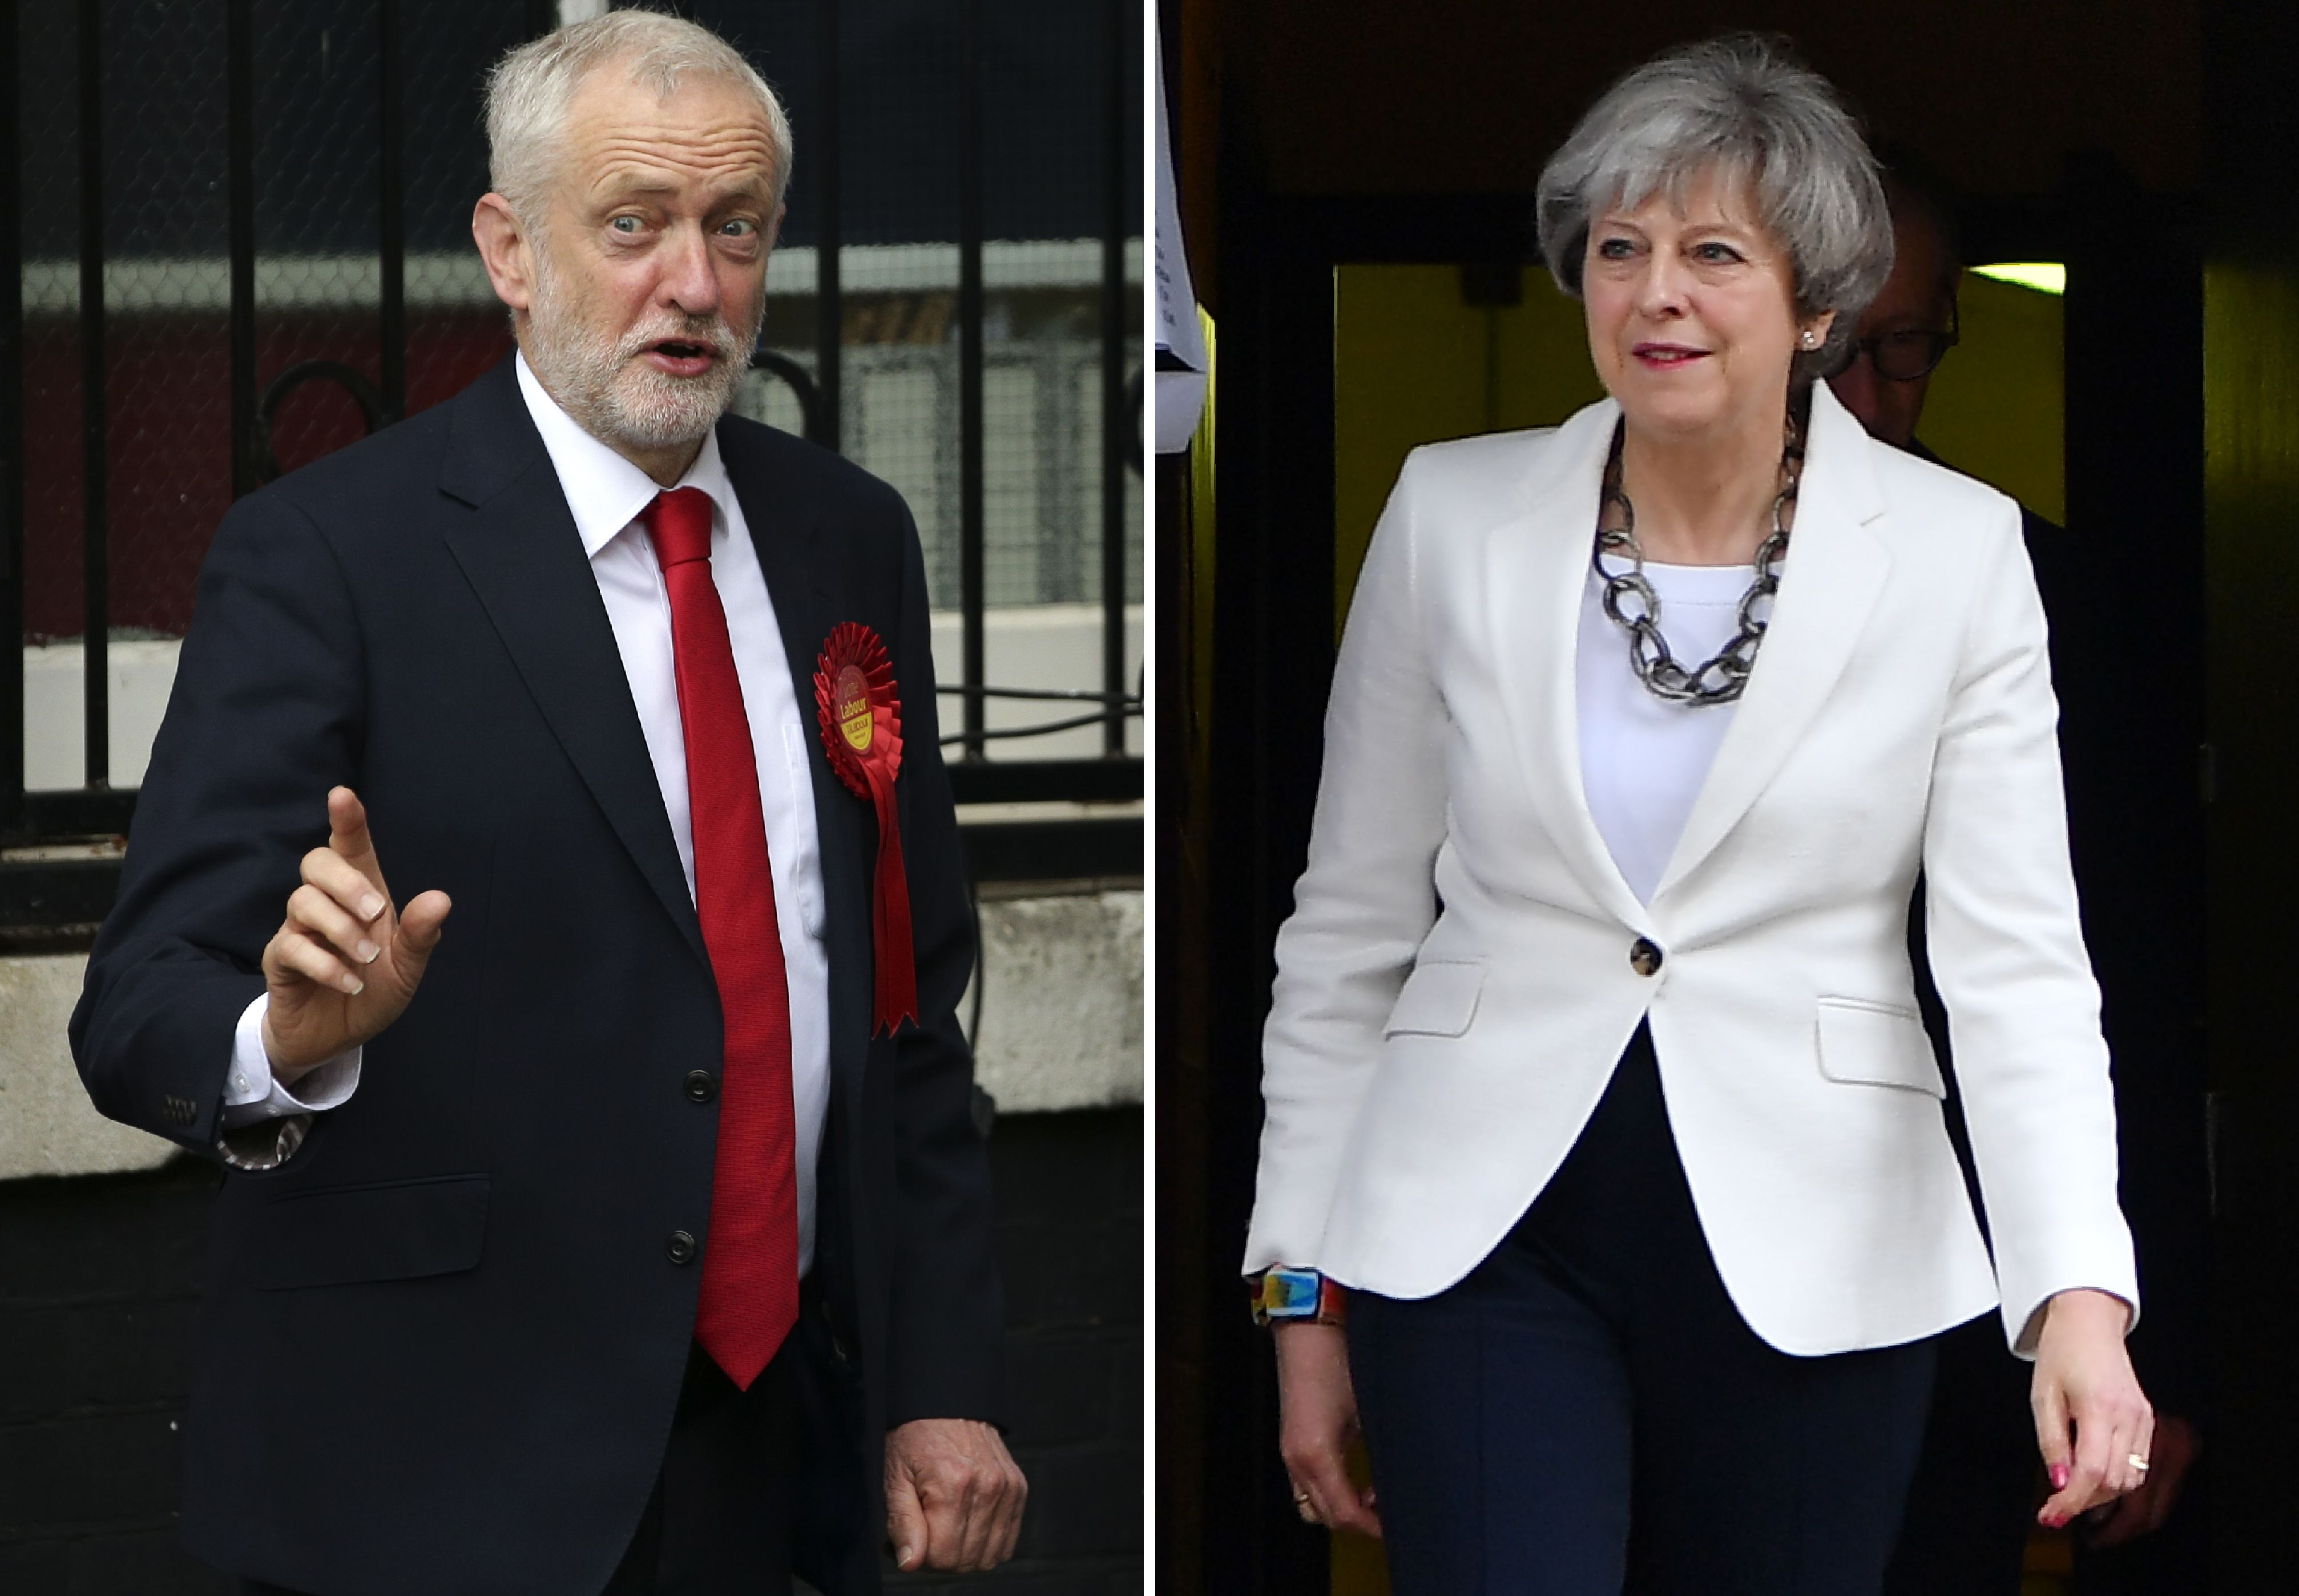 This combination picture shows opposition Labour party leader Jeremy Corbyn (L) voting in north London and British Prime Minister Theresa May voting in Maidenhead on June 8, 2017 during 